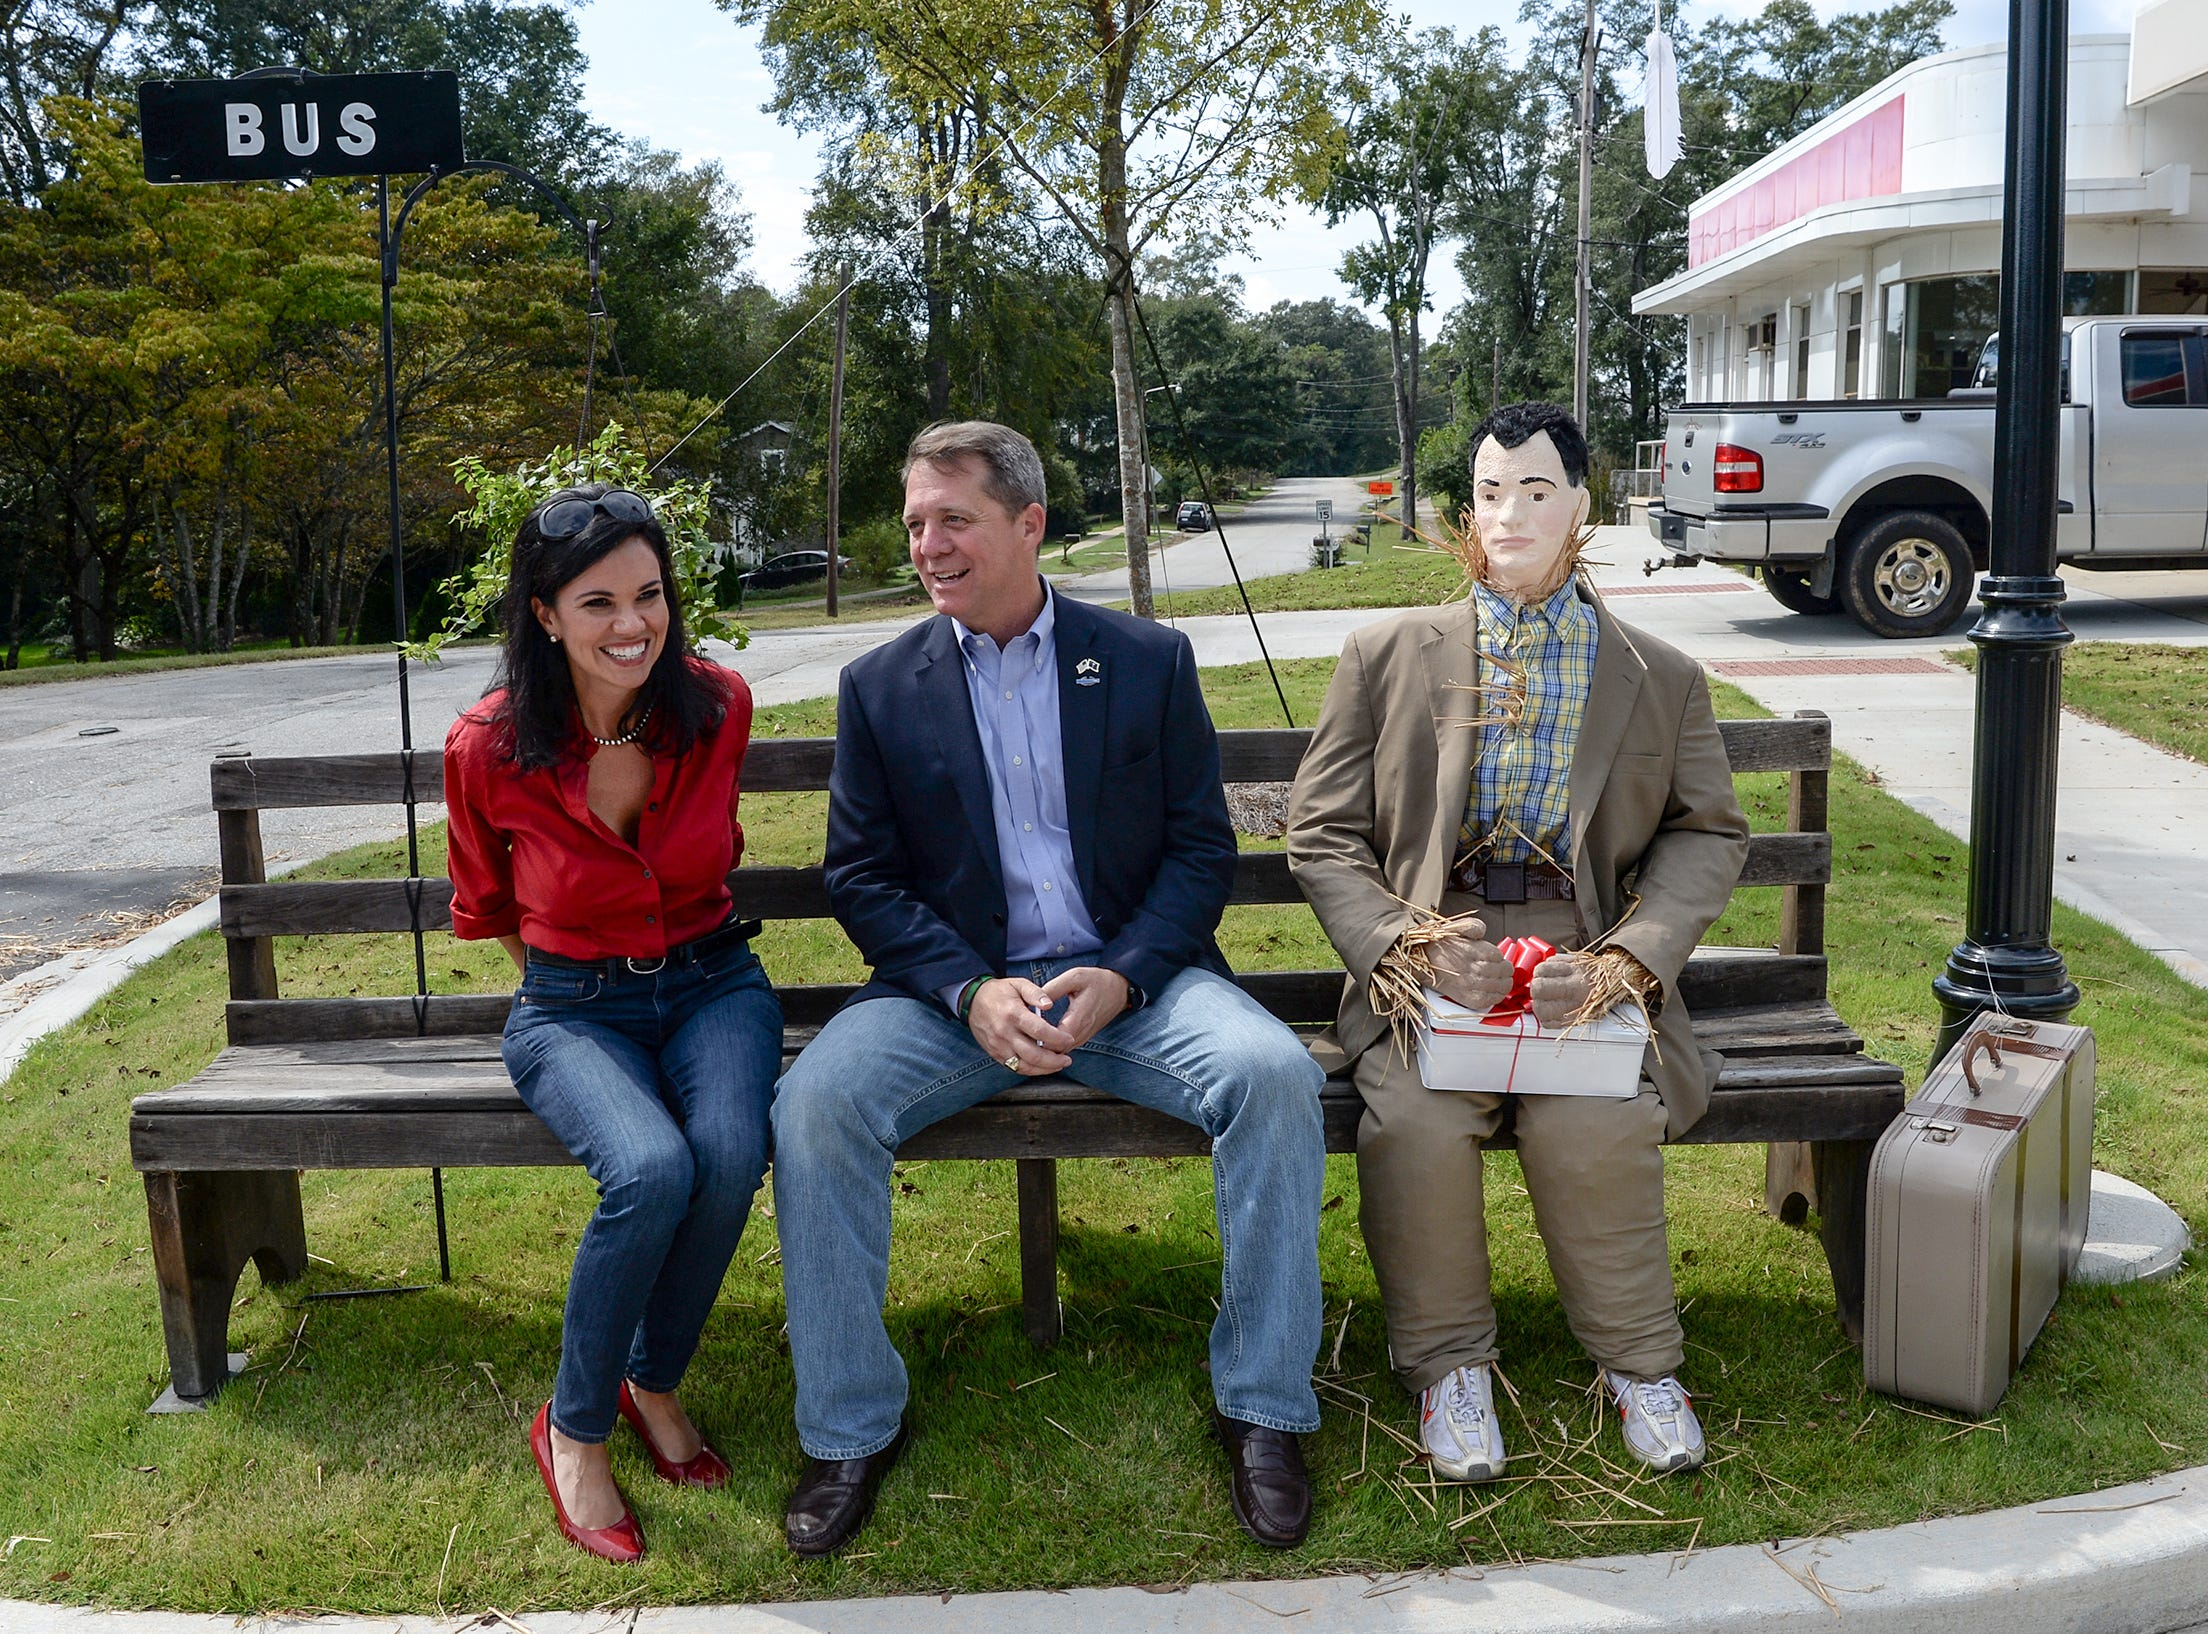 Rep. James Smith, middle, Democratic nominee for South Carolina Governor, and running mate Rep. Mandy Powers Norell stop to sit near a scarecrow version of movie character Forest Gump, as they visit in the town square in Pendleton on Monday, October 1, 2018.